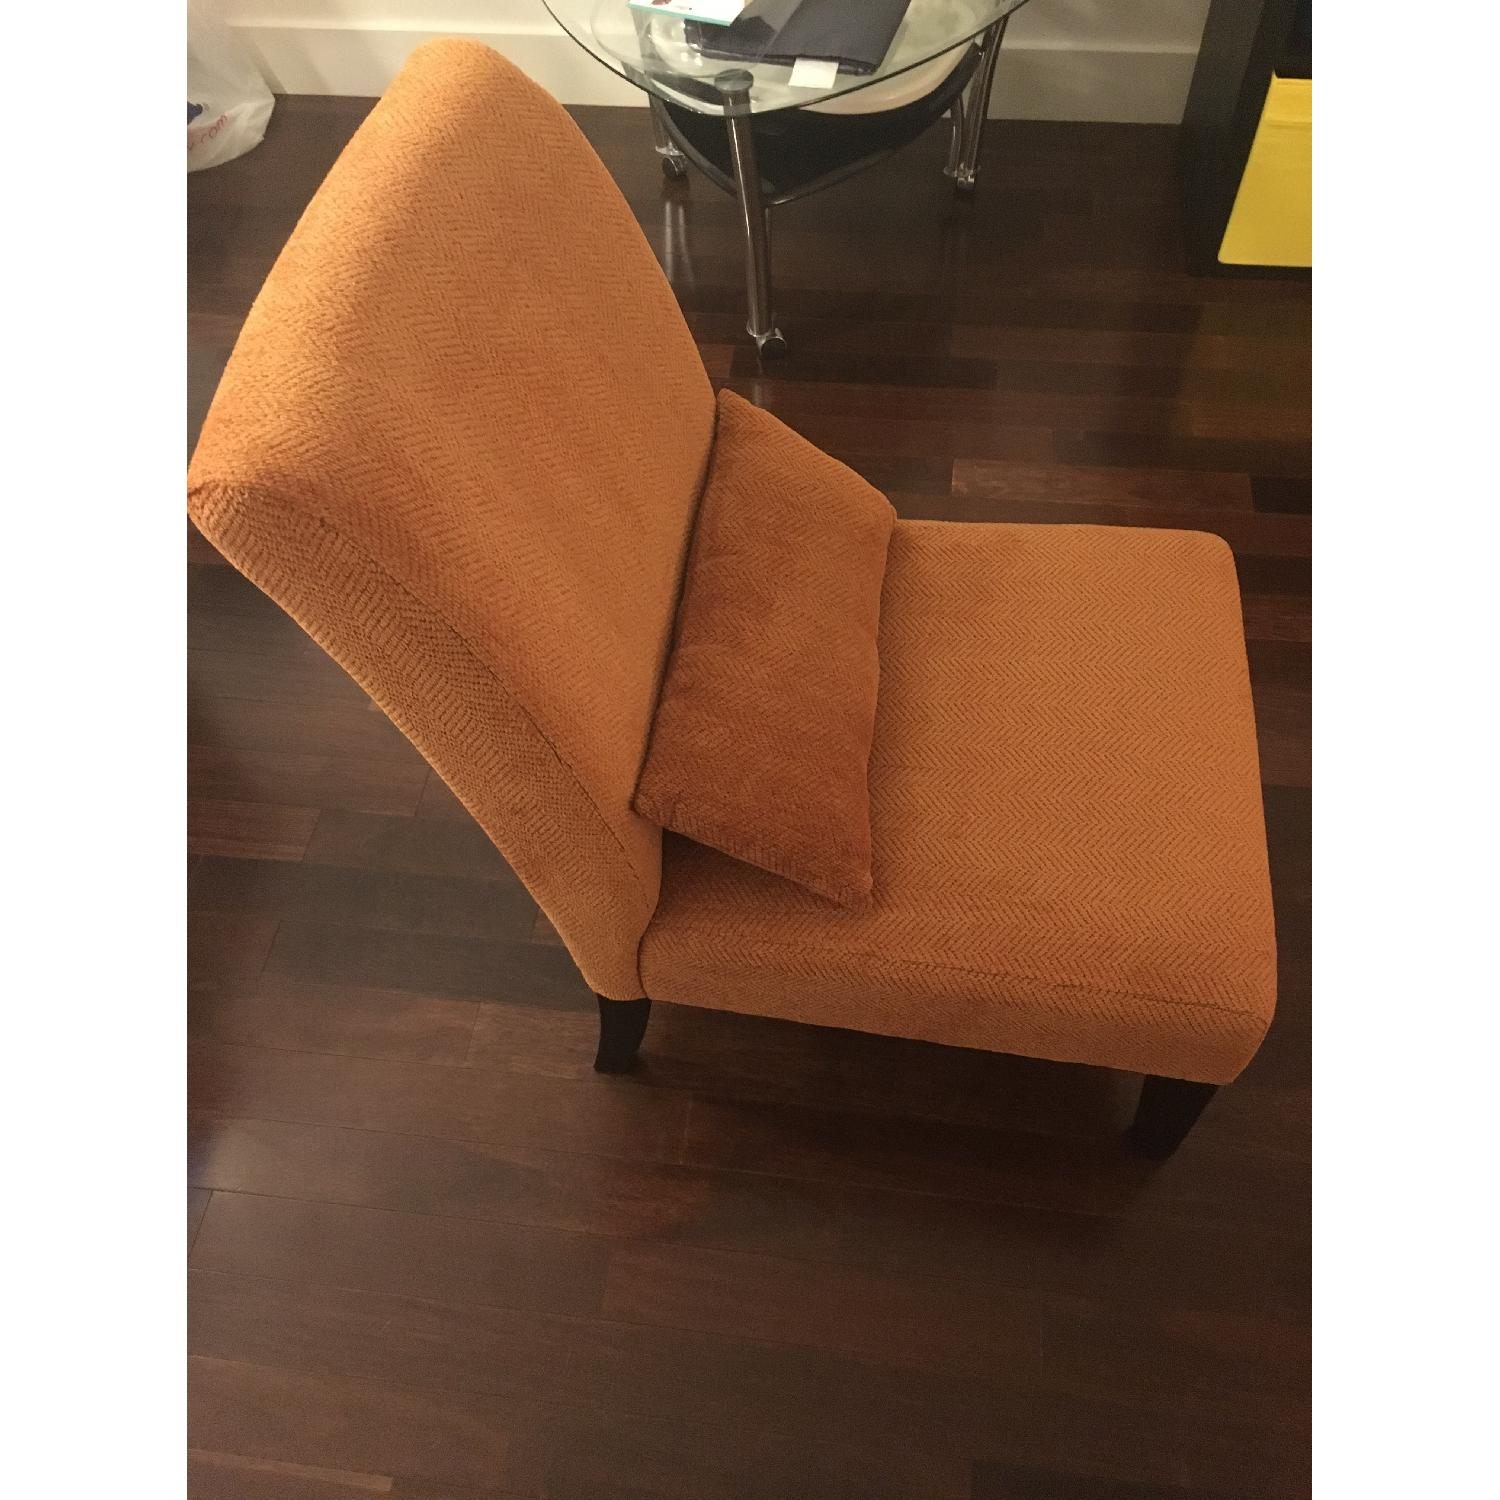 Ashley's Annora Accent Chair - image-2